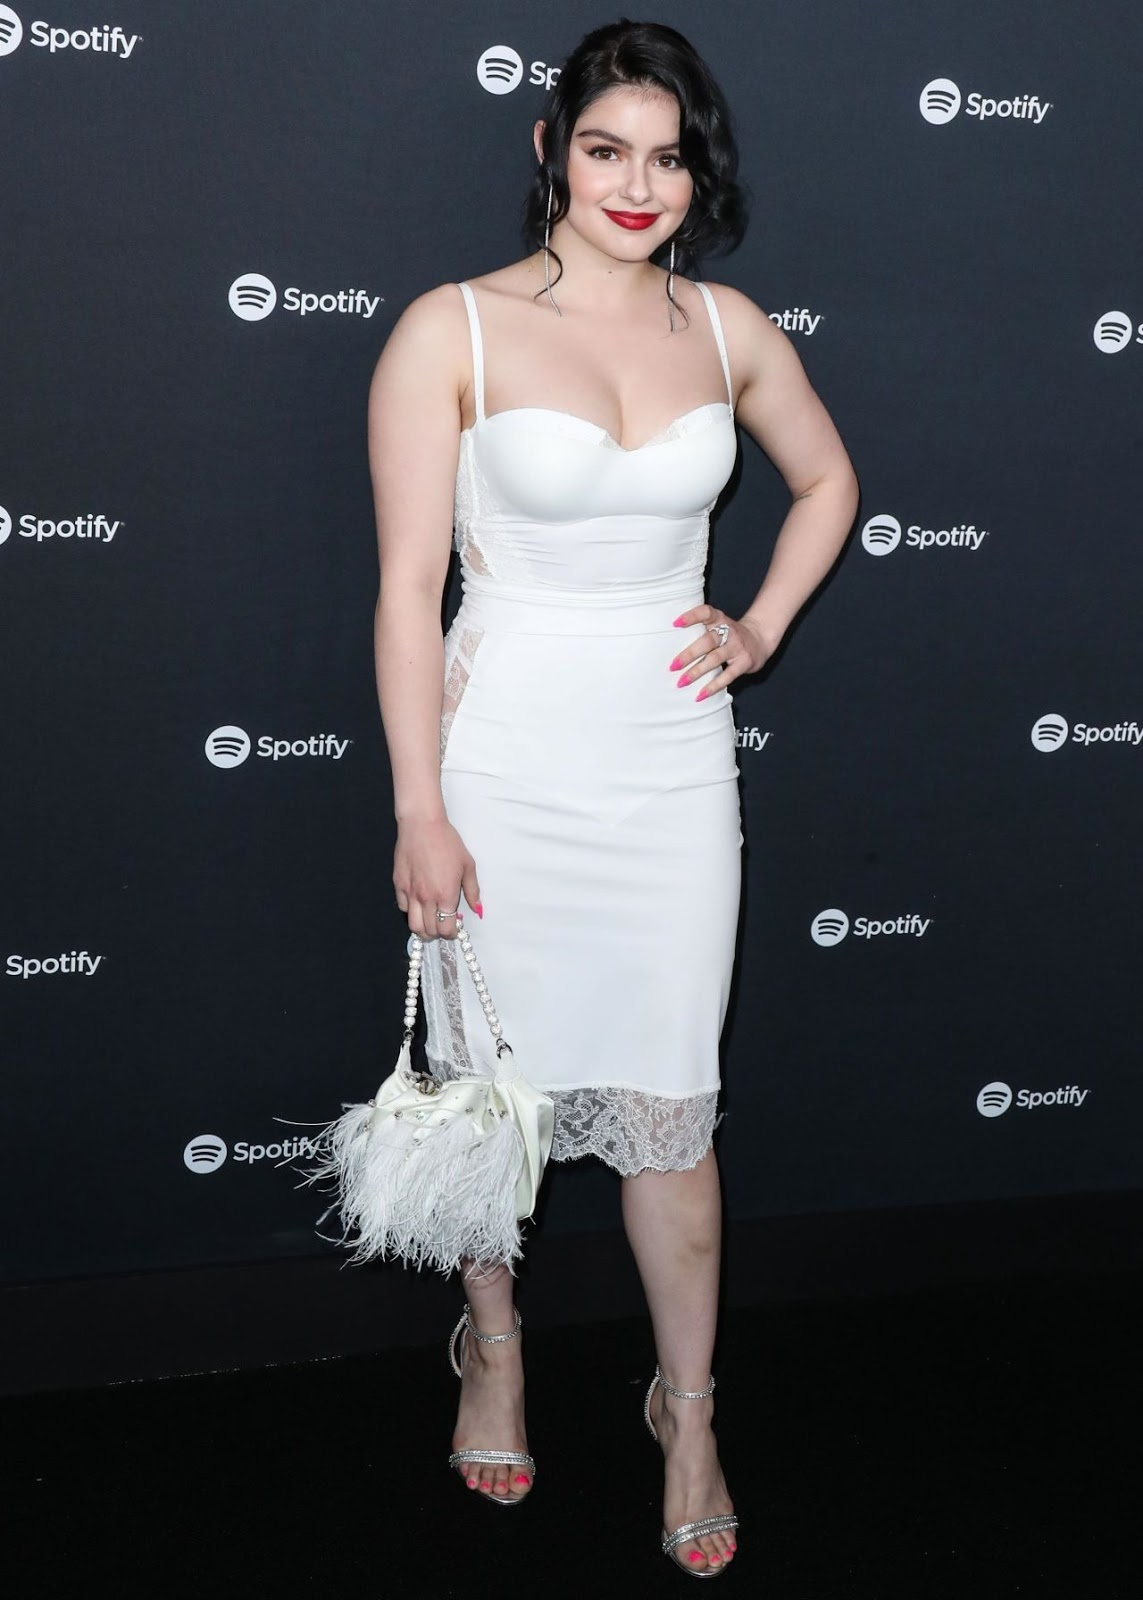 Ariel Winter - Spotify Best New Artist 2020 Party at The Lot Studios in Los Angeles